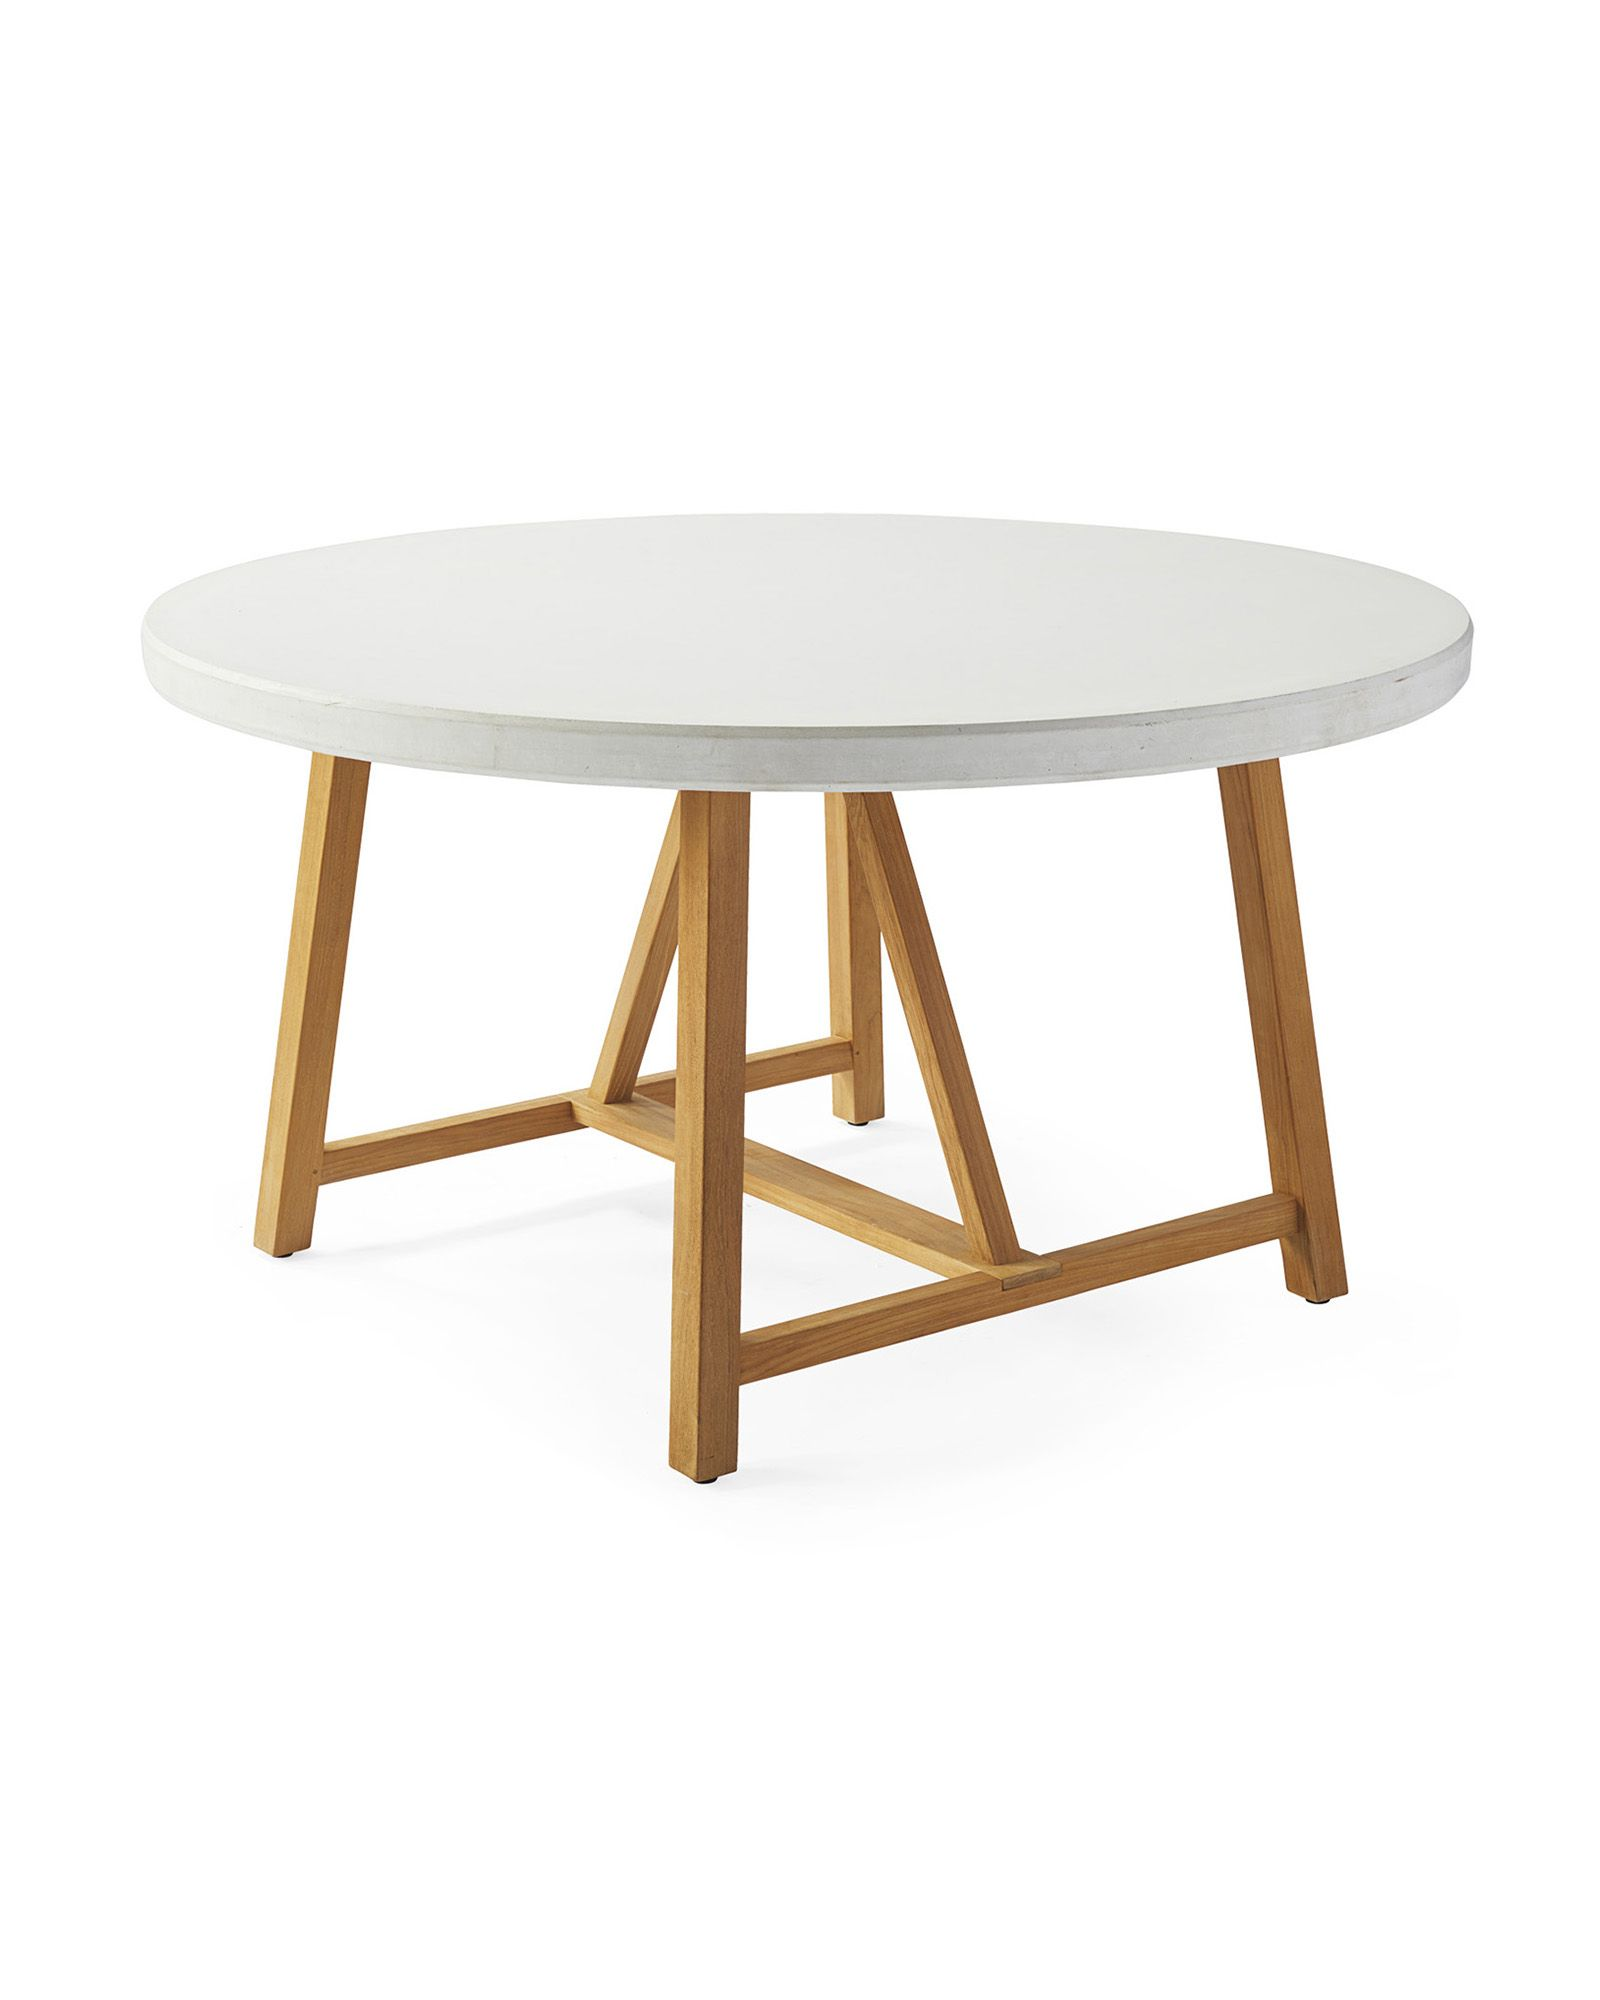 Terrace Teak Dining Table Serena Lily Round Wooden Dining Table Dining Room Table Teak Dining Table [ 2000 x 1600 Pixel ]